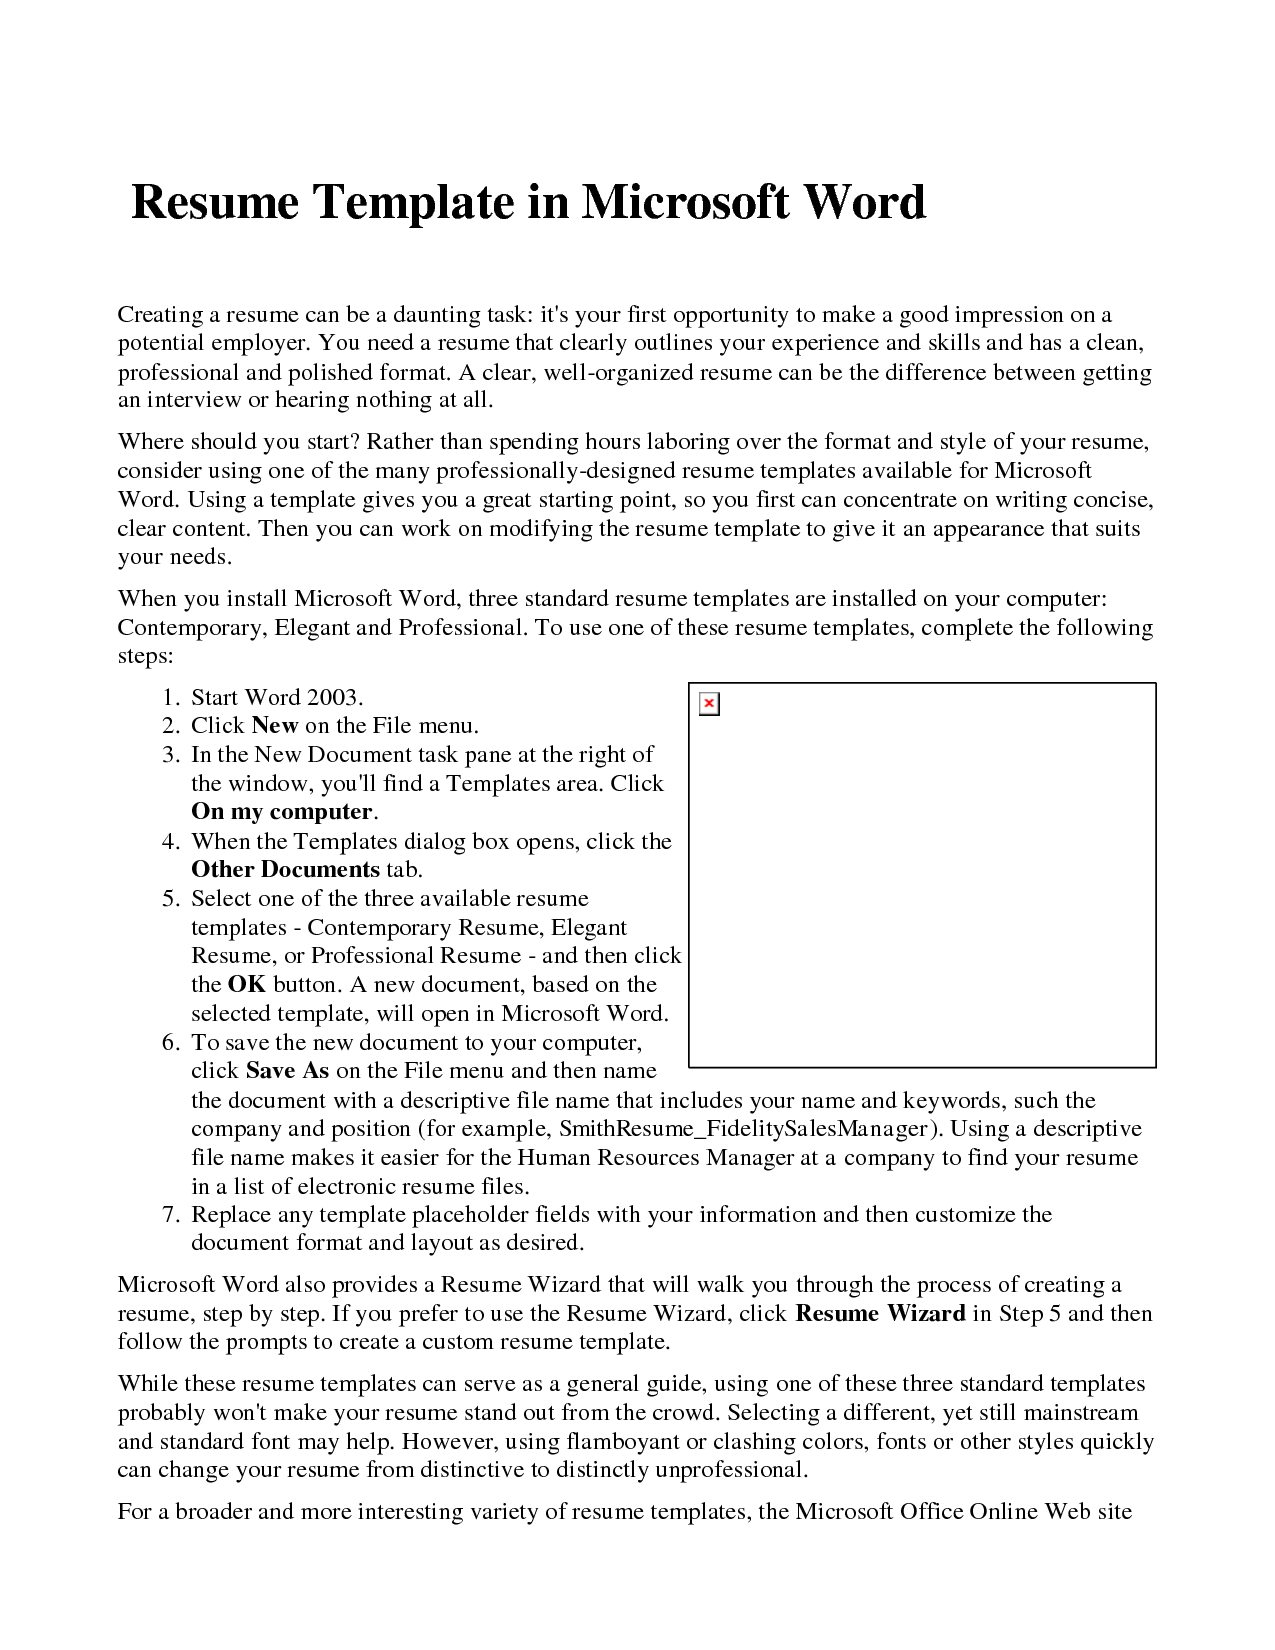 Free Resume Templates Word 2010 Delectable Resume Templates Microsoft Word  Httpwwwresumecareer